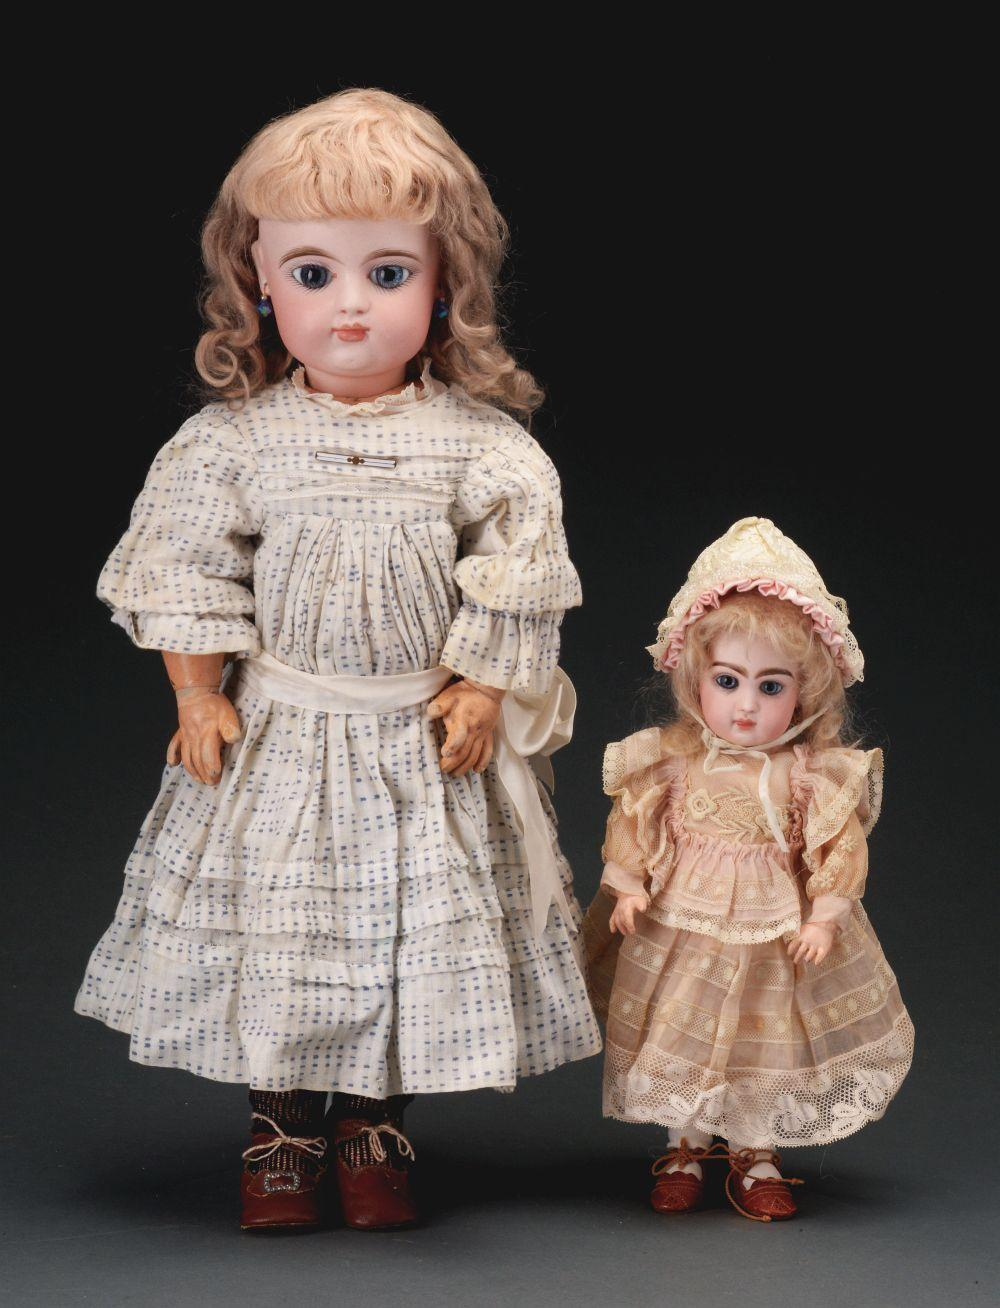 Lot of 2: Closed Mouth French Bisque Dolls.